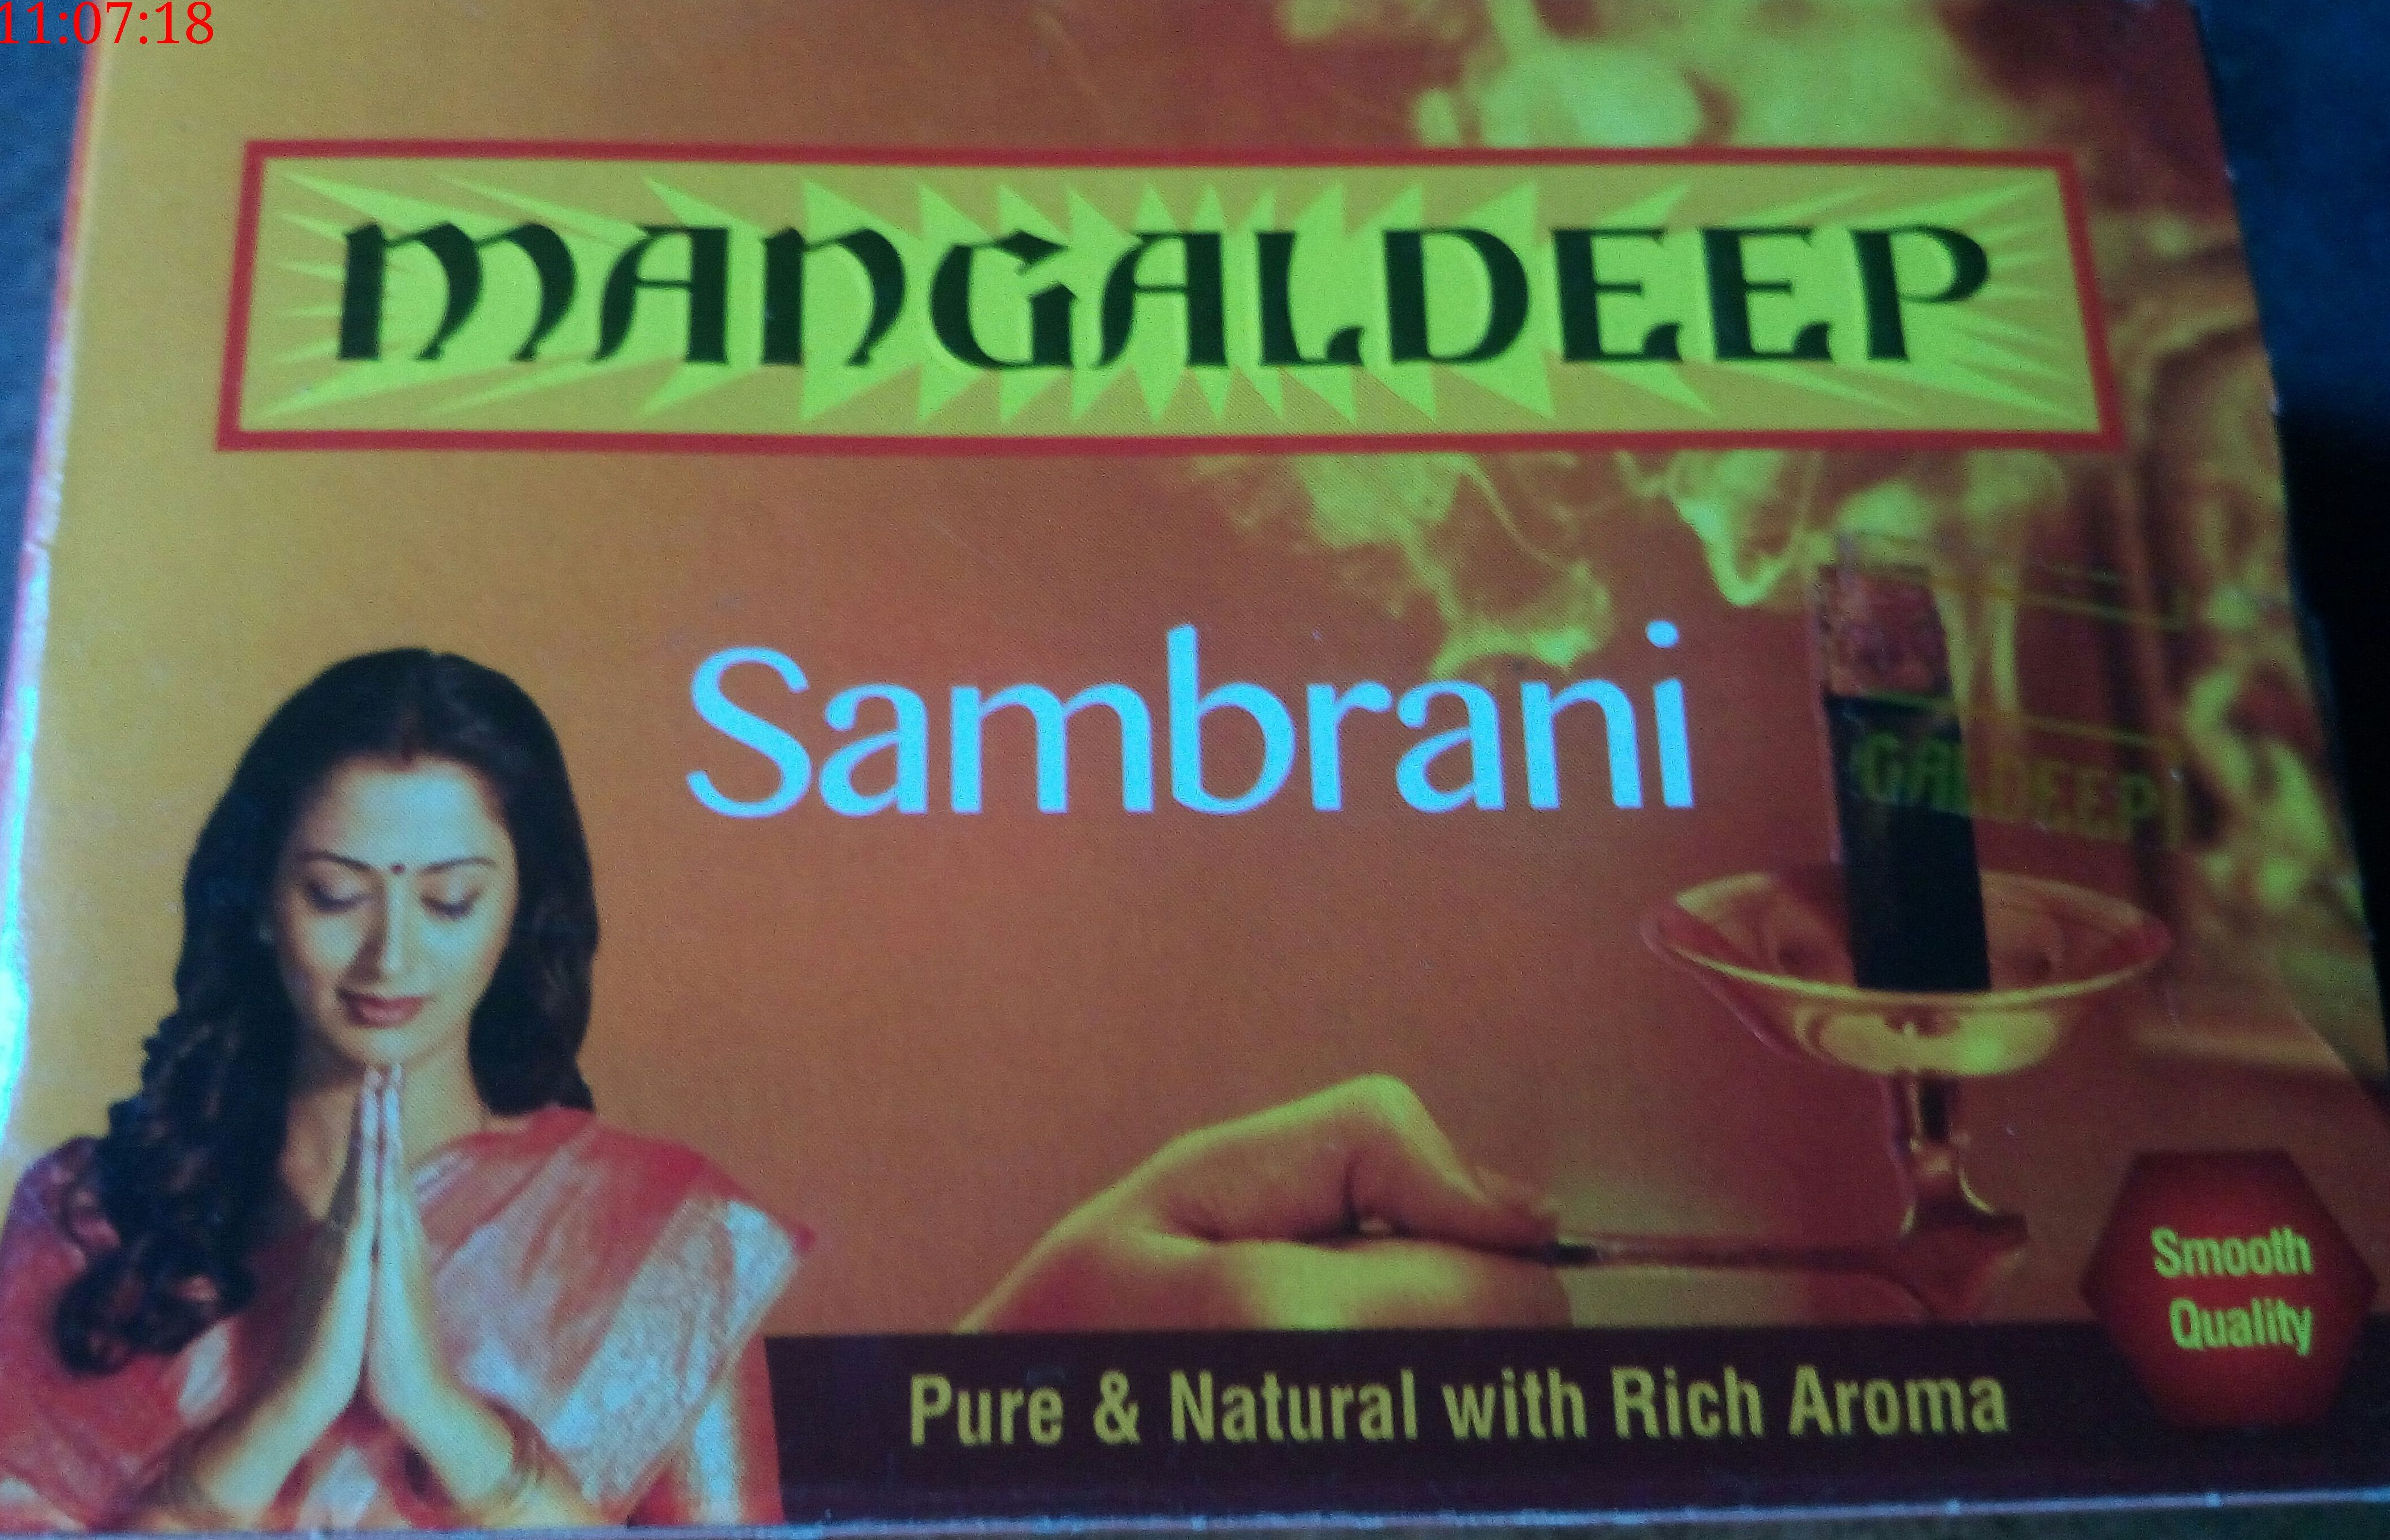 Mangaldeep Sambrani Sticks ( 20 Sticks )